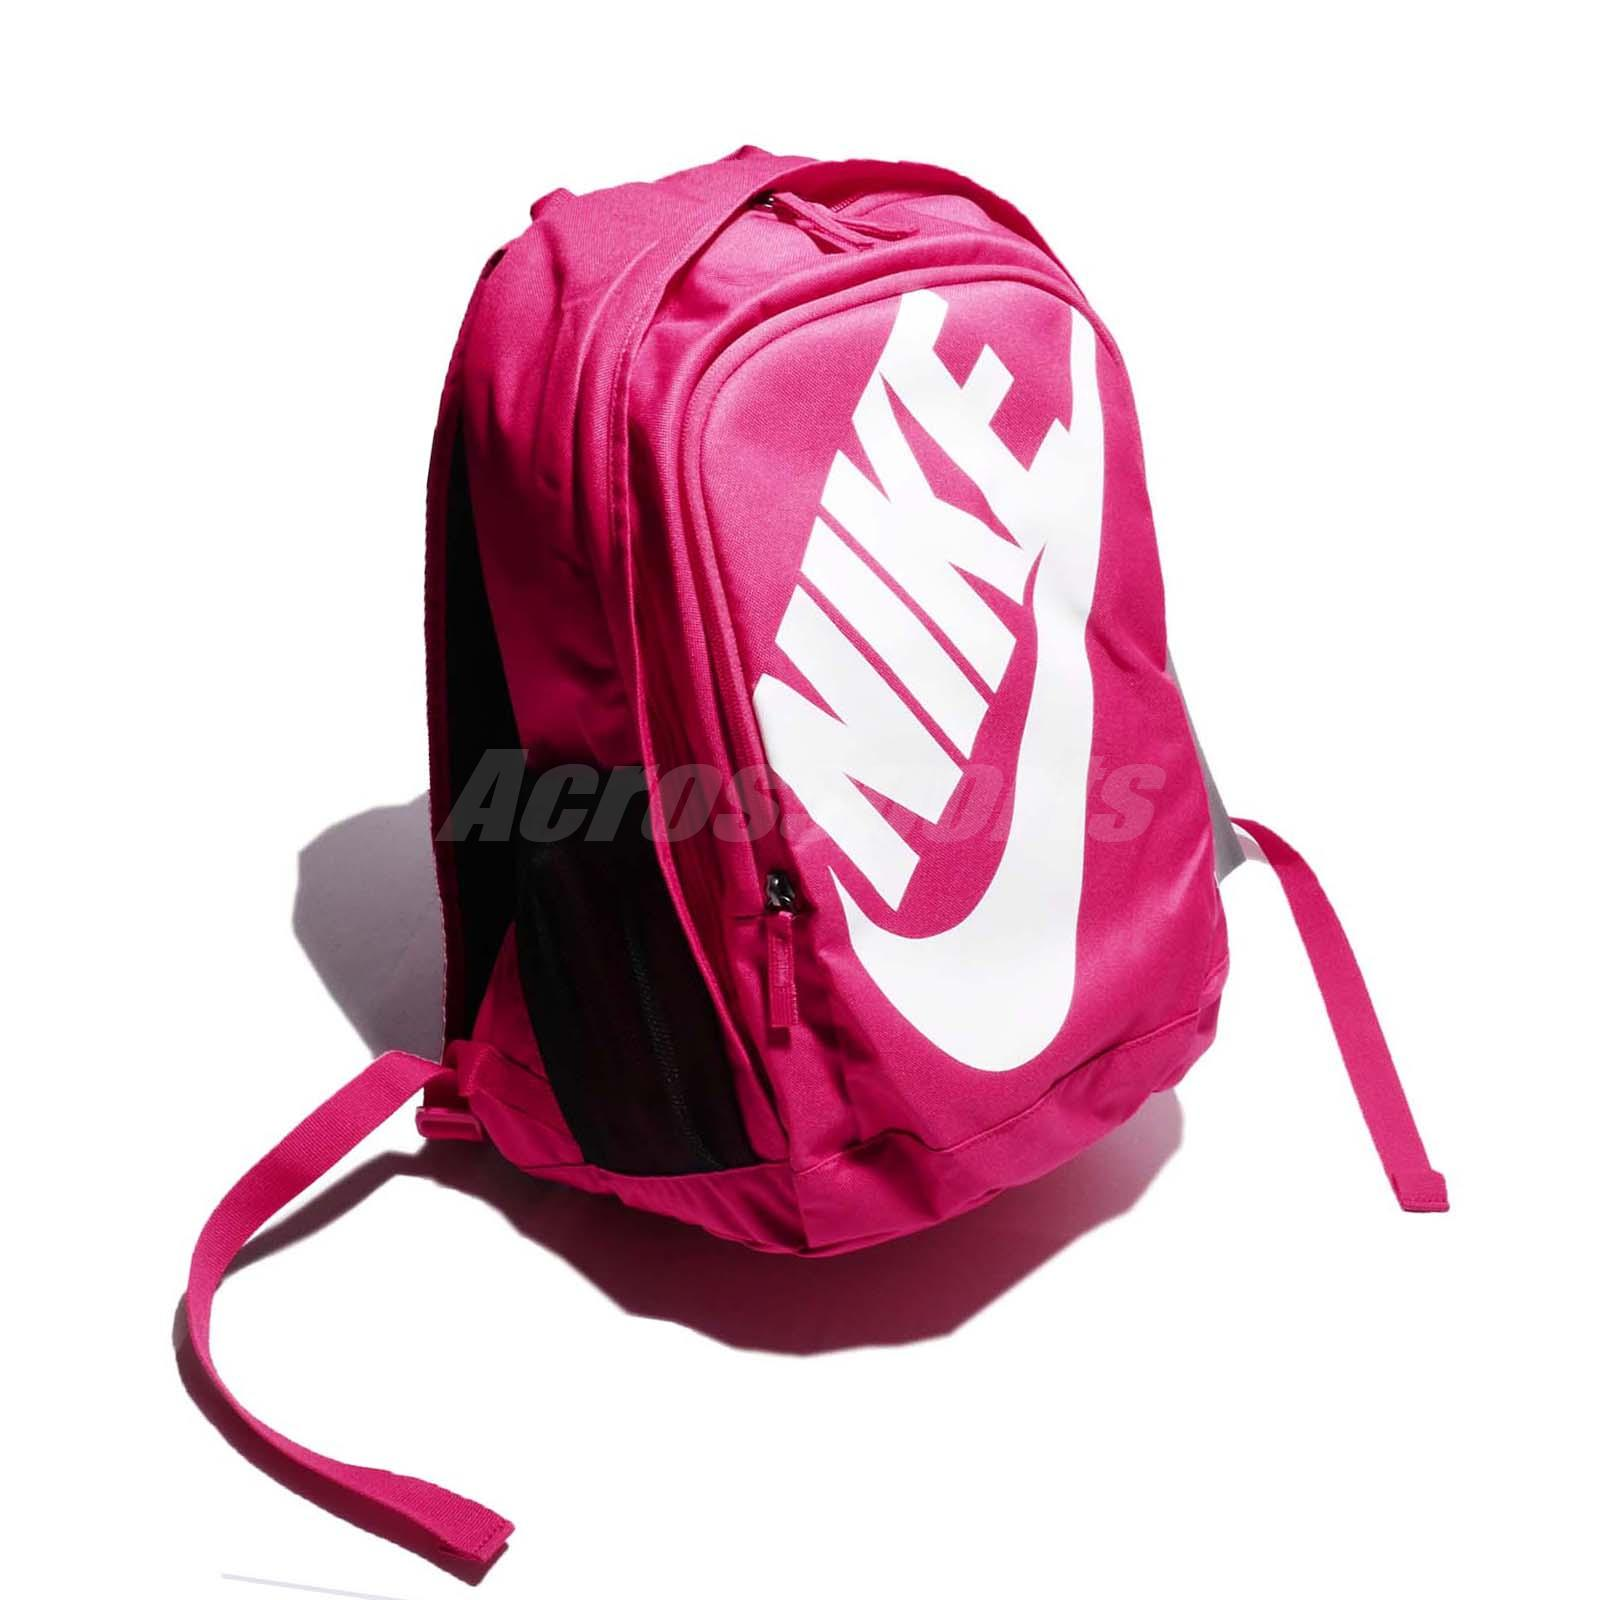 5fa4a9115eac Nike Hayward Futura M 2.0 Pink White Swoosh Women Backpack Bag BA5217-694